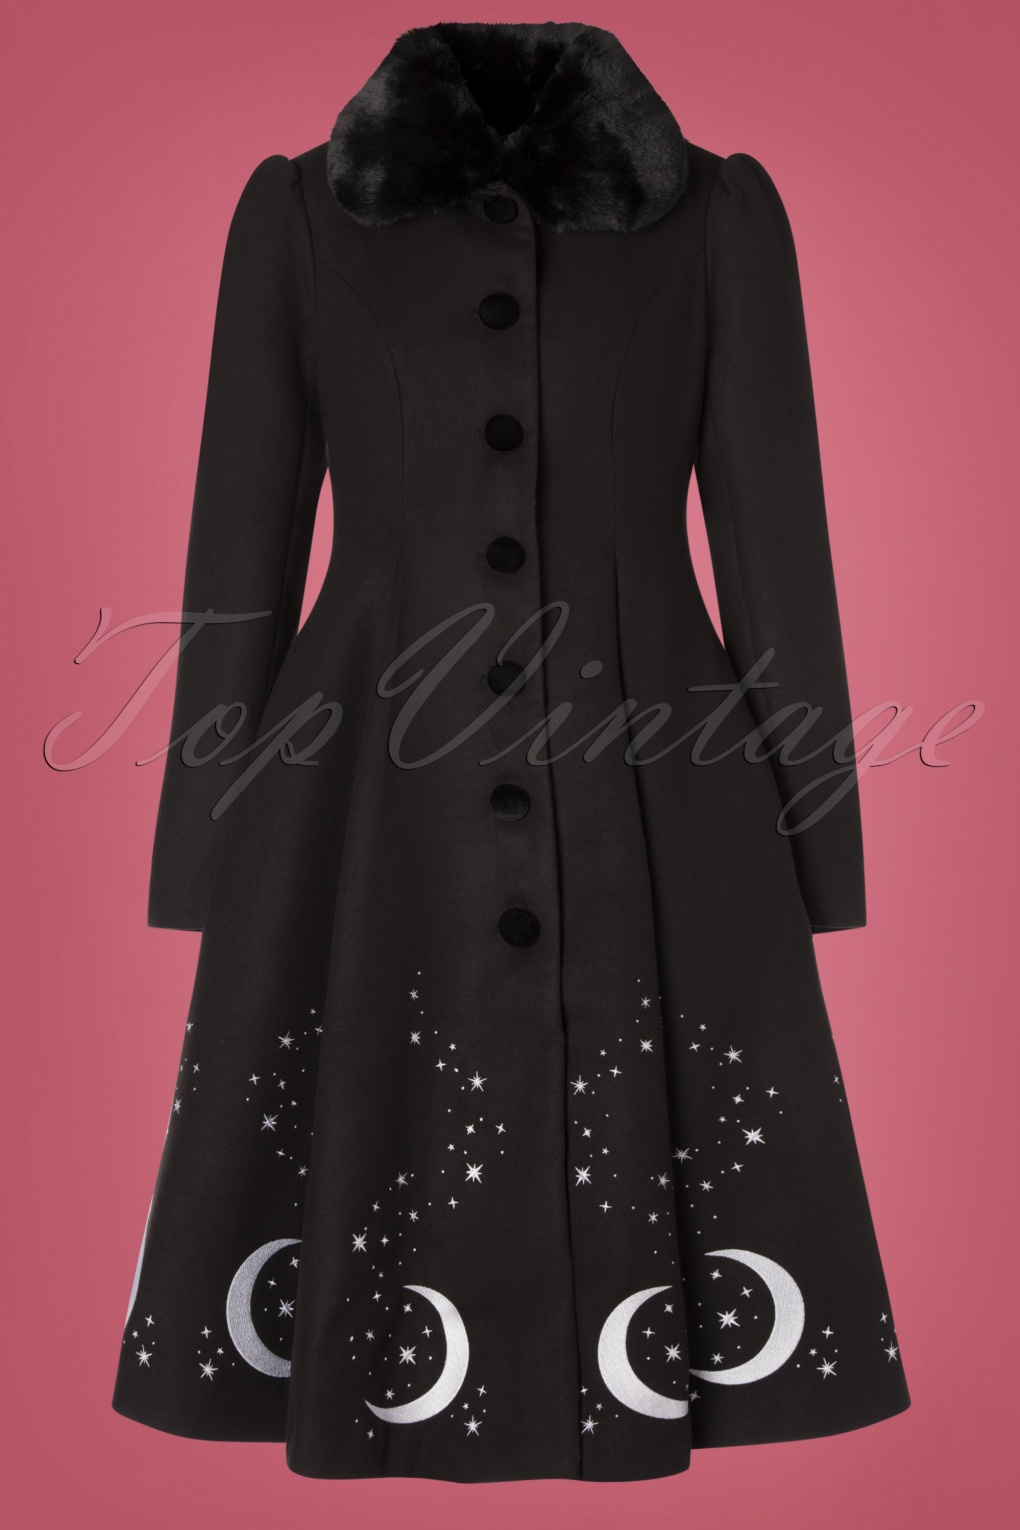 Vintage Coats & Jackets | Retro Coats and Jackets 50s Interstellar Coat in Black £125.24 AT vintagedancer.com